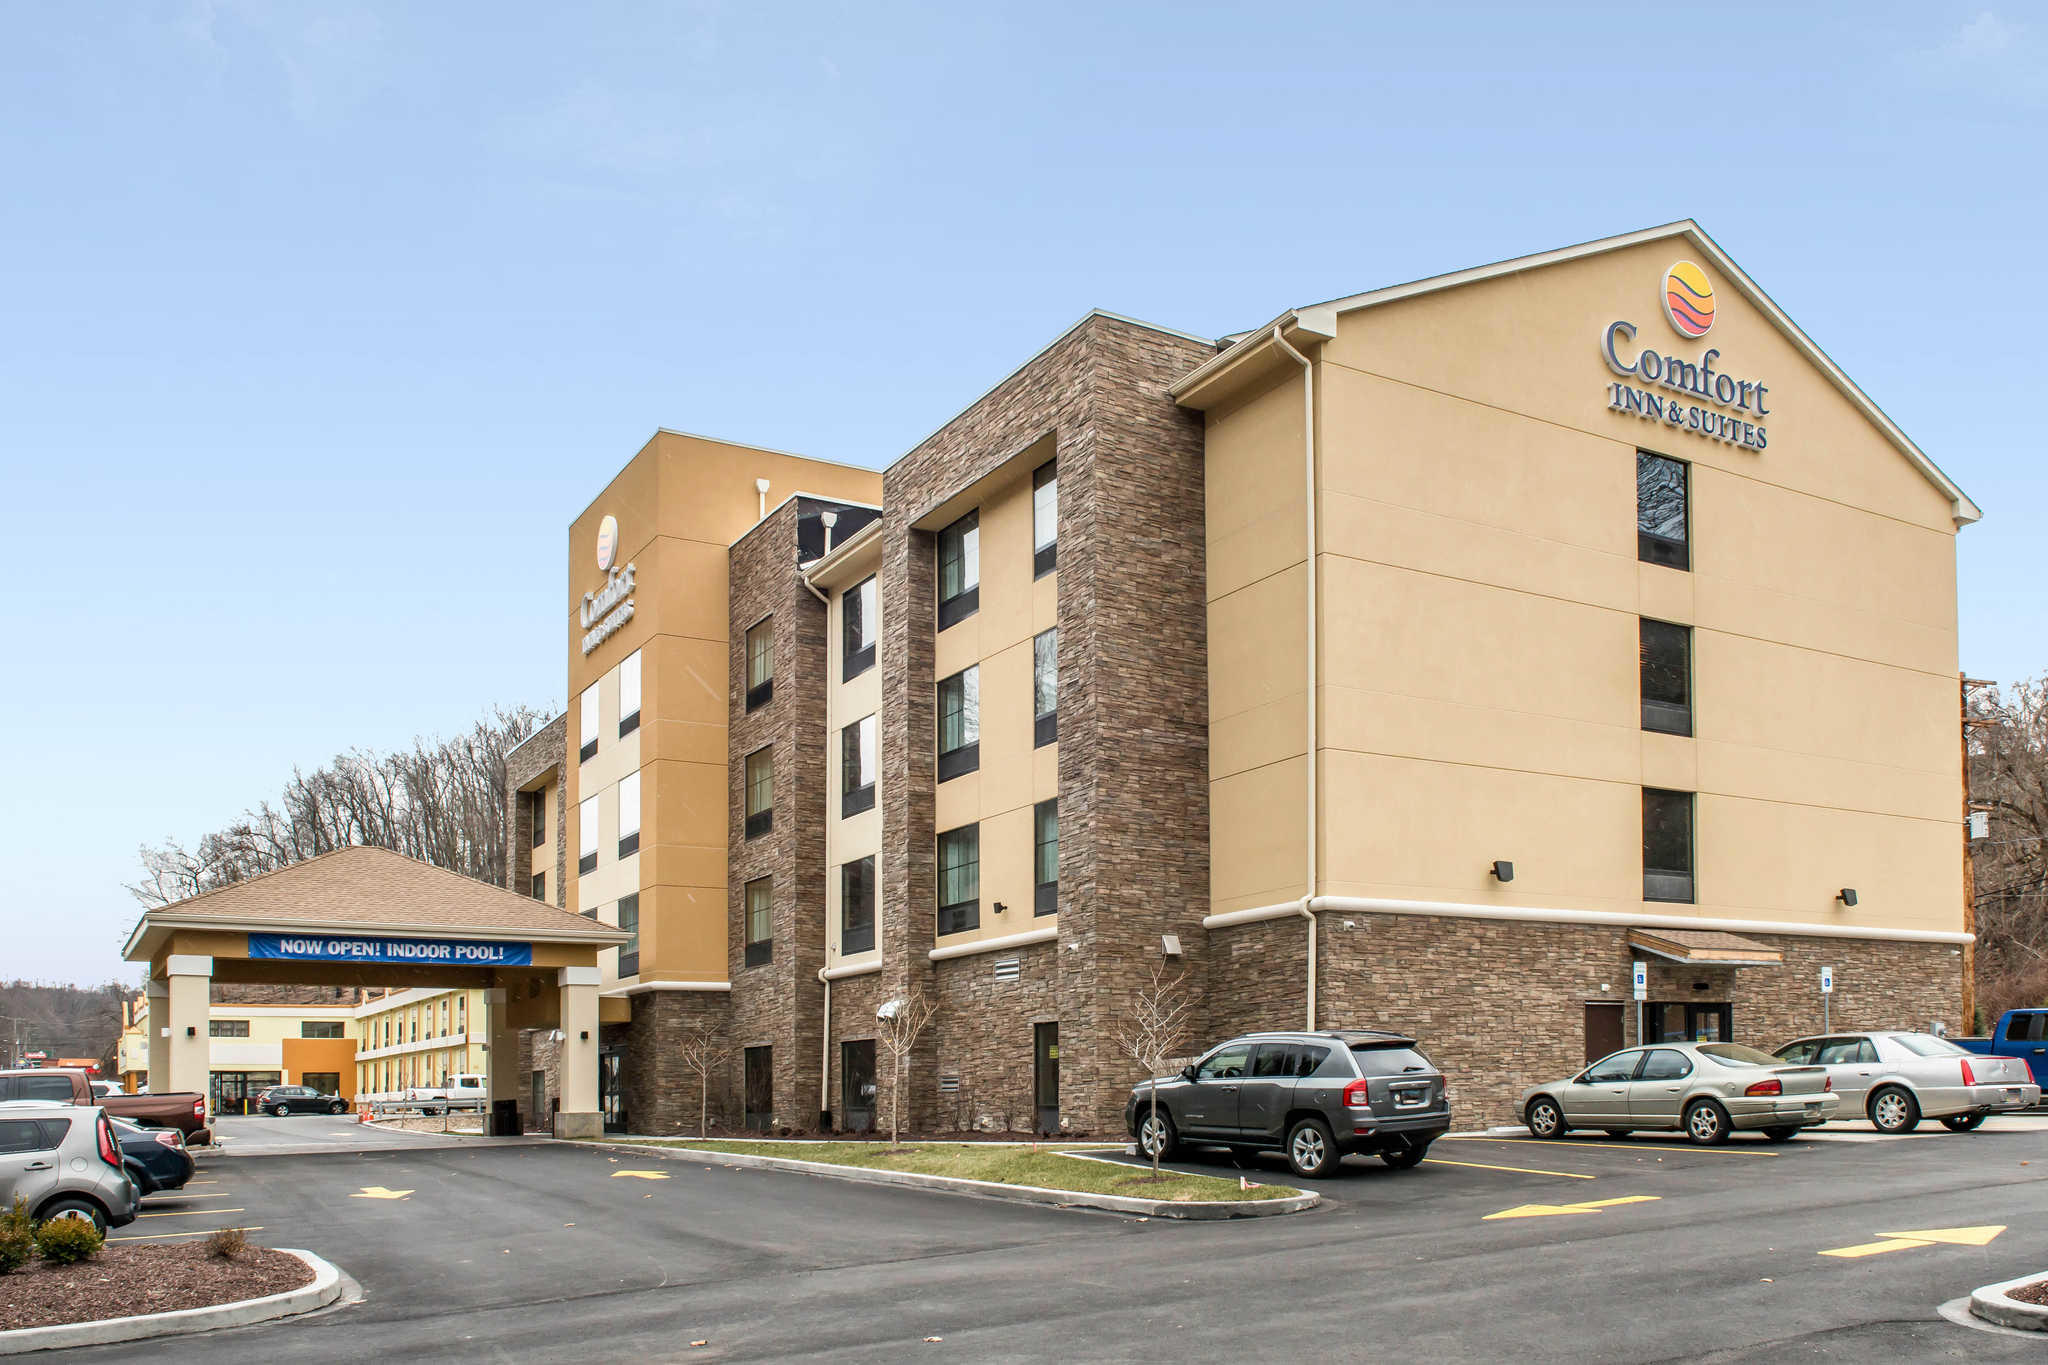 comfort inn suites in pittsburgh pa 412 343 0. Black Bedroom Furniture Sets. Home Design Ideas